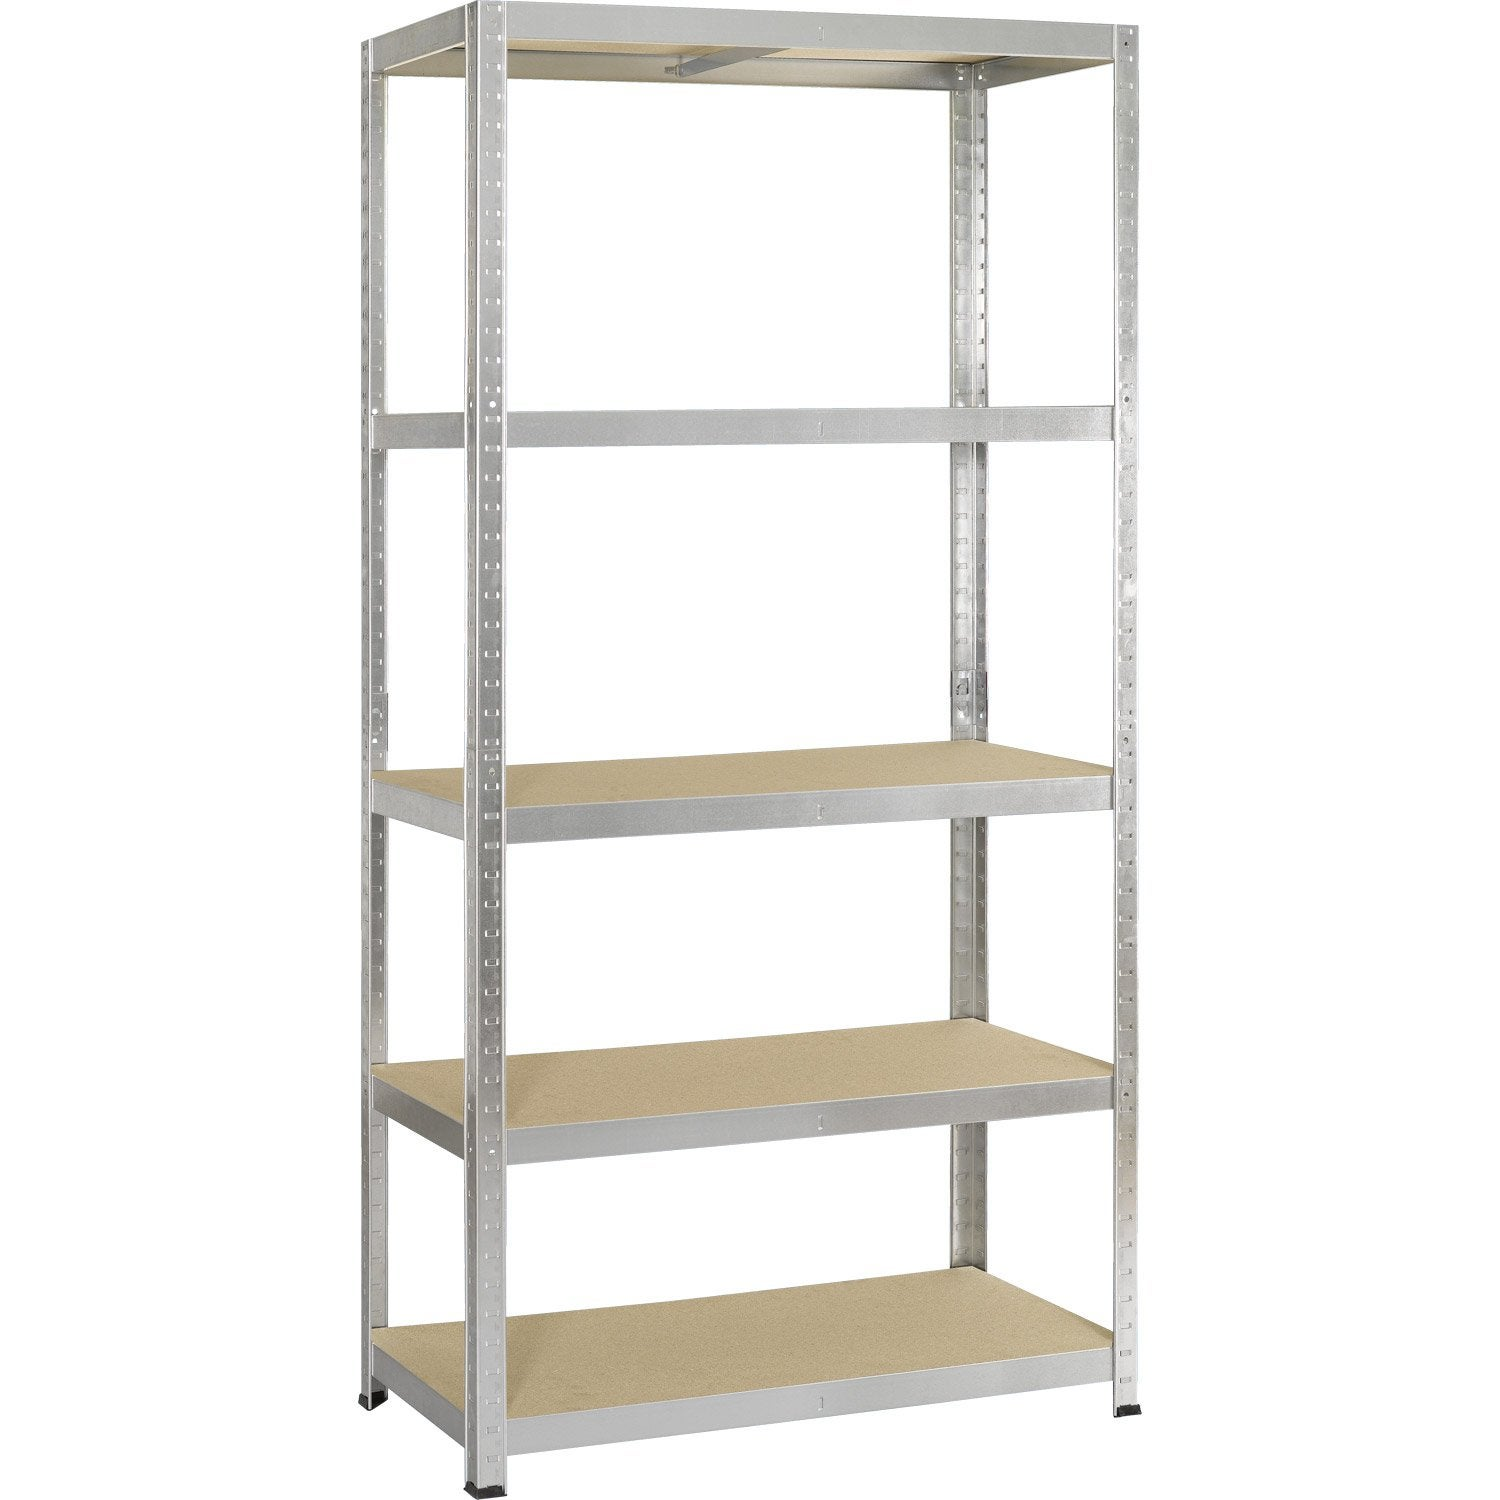 Etag re acier avasco strong 5 tablettes galva x h - Etagere modulable leroy merlin ...